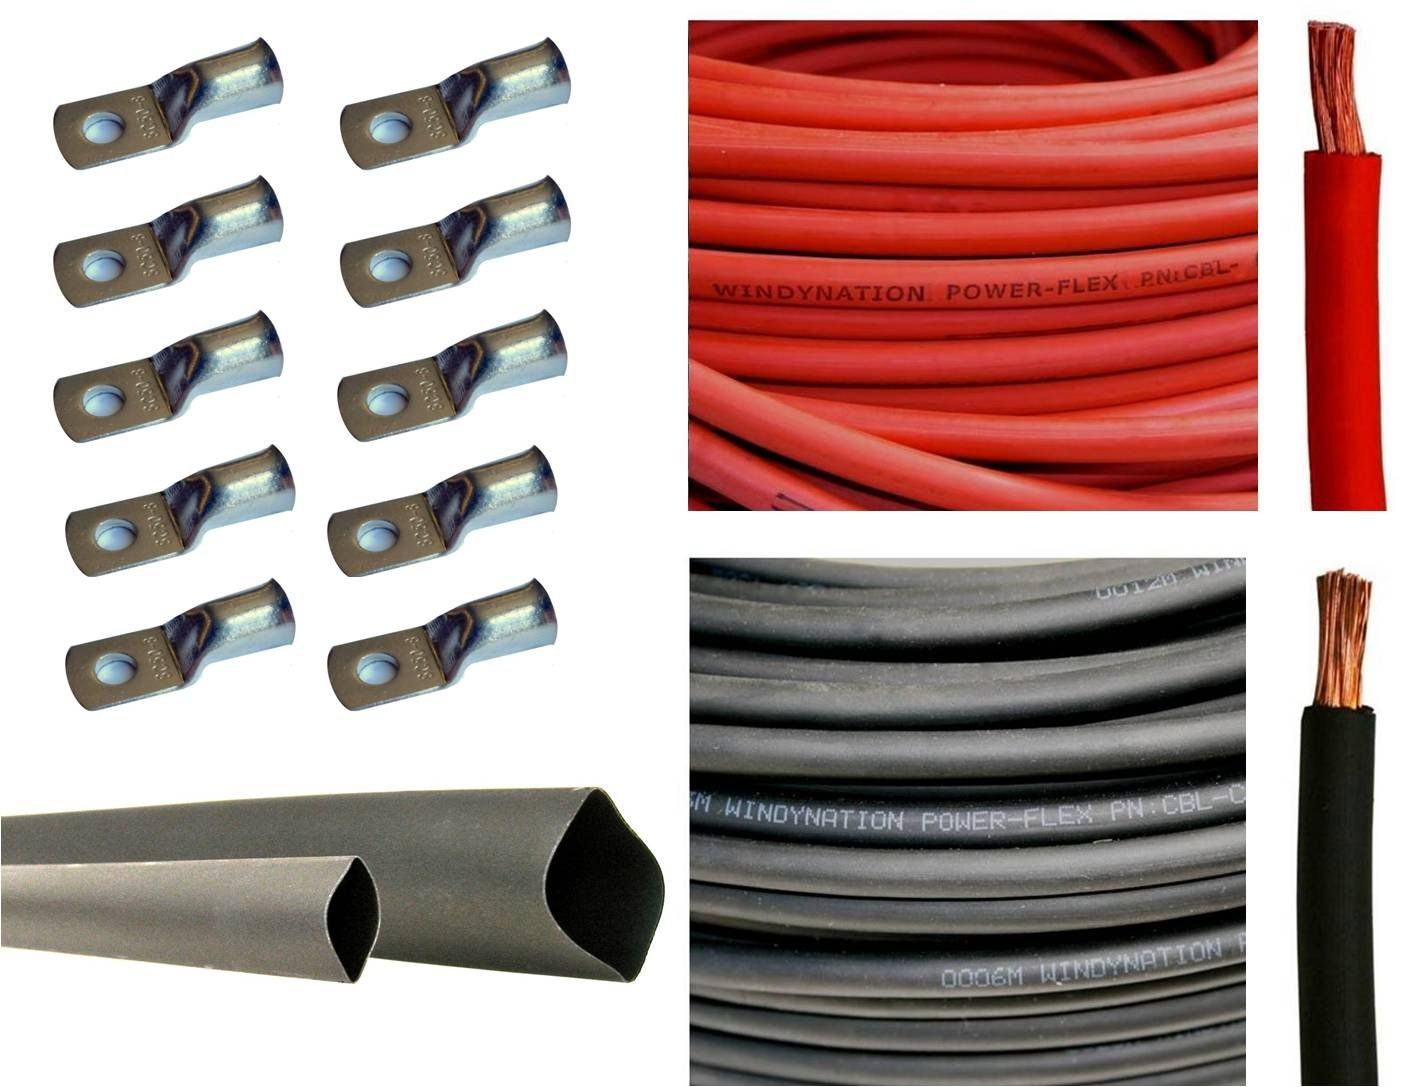 2 Gauge 2 Awg 10 Feet Red 10 Feet Black Welding Battery Pure Copper Flexible Cable 10pcs Of 3 8 Tinned Copper Cabl Pure Products Pure Copper Welding Cable